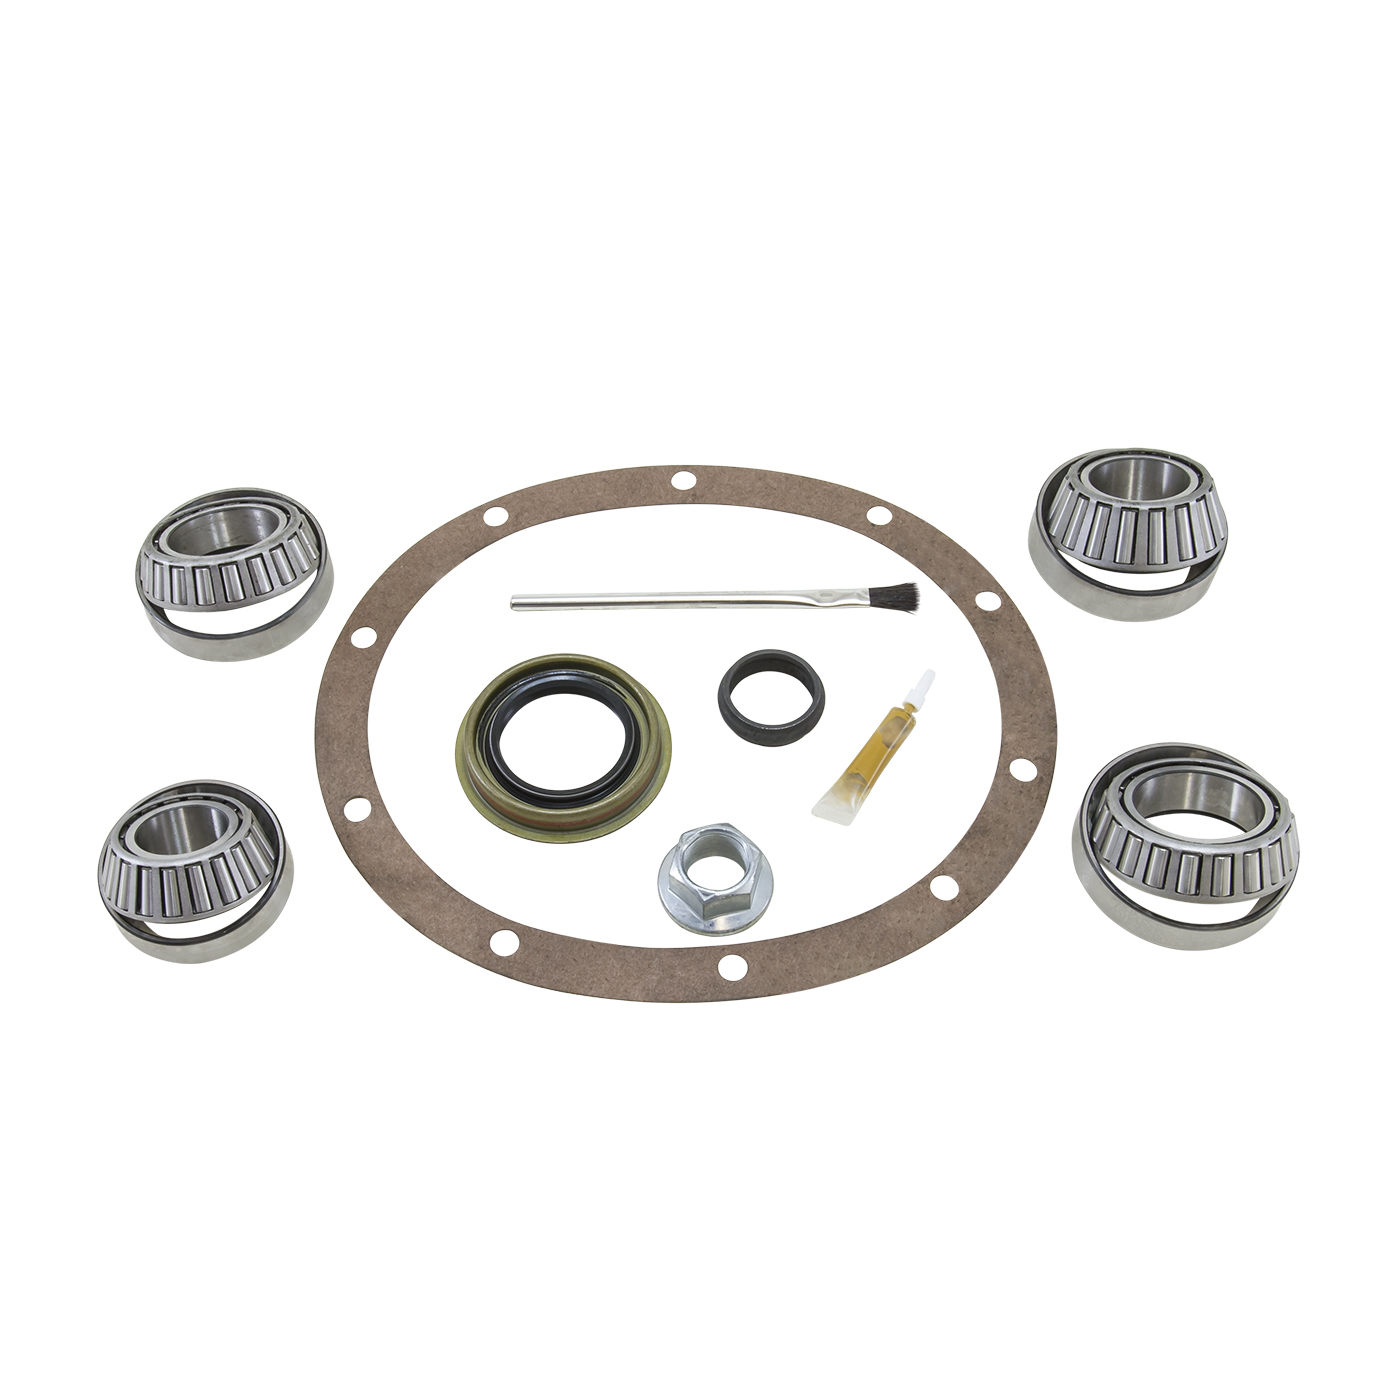 BK M35-GRAND - Yukon Bearing install kit for '99 and newer Model 35 differential for the Grand Cherokee